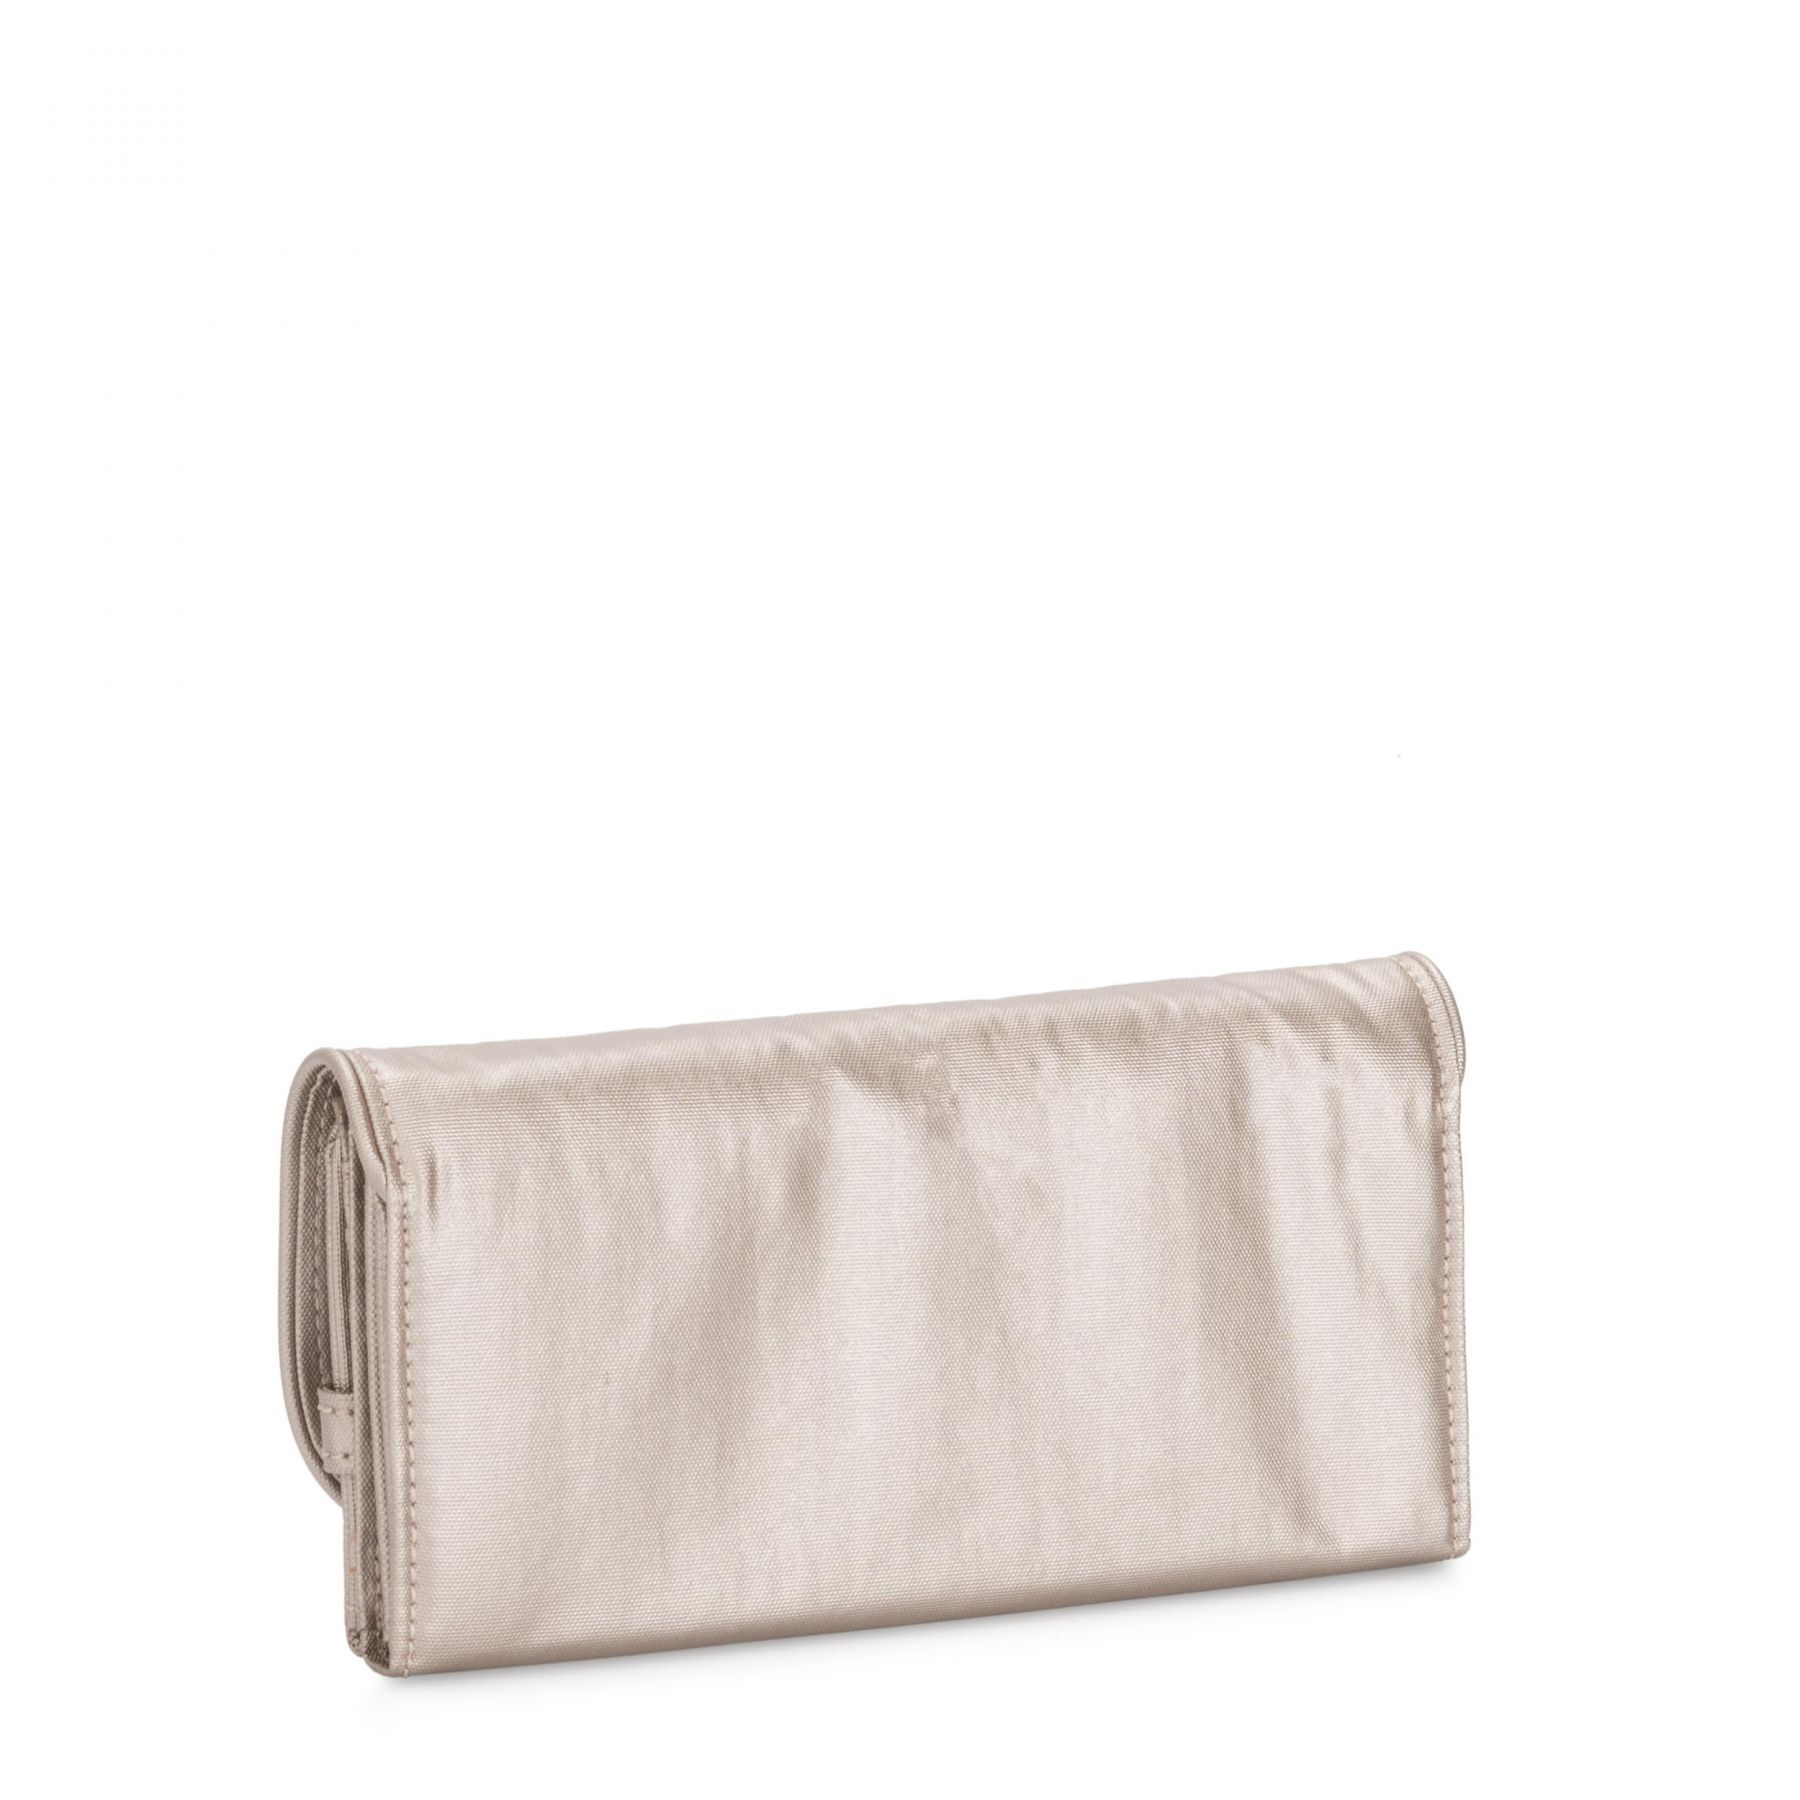 Carteira Grande Money Land Kipling  Metallic Glow